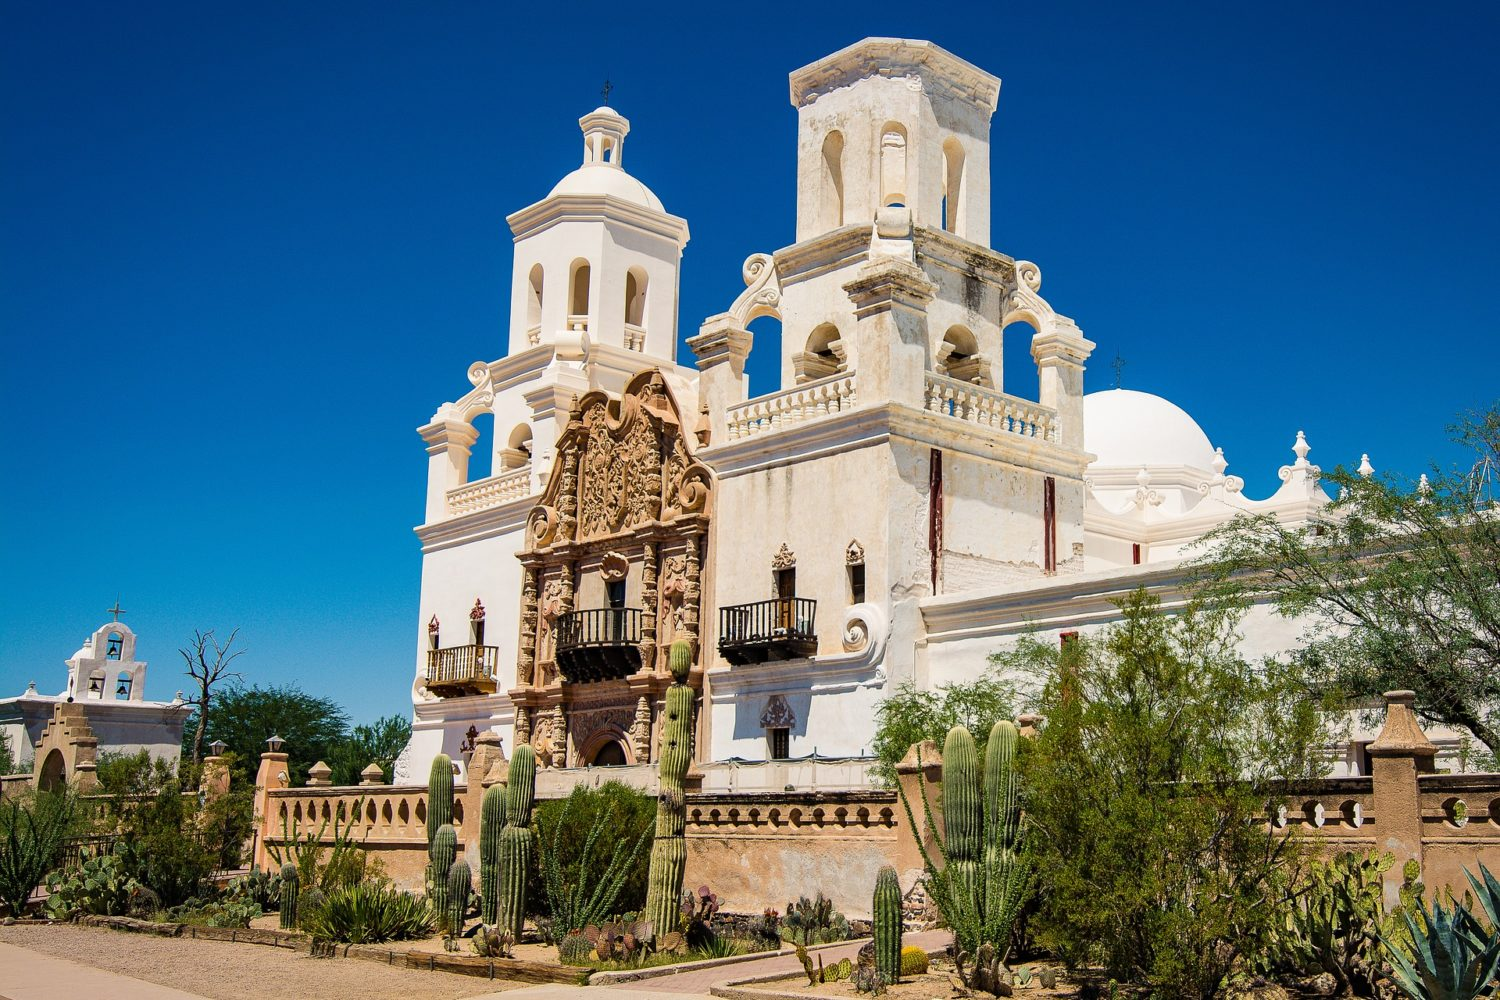 Visit the old mission in Old Town Tucson